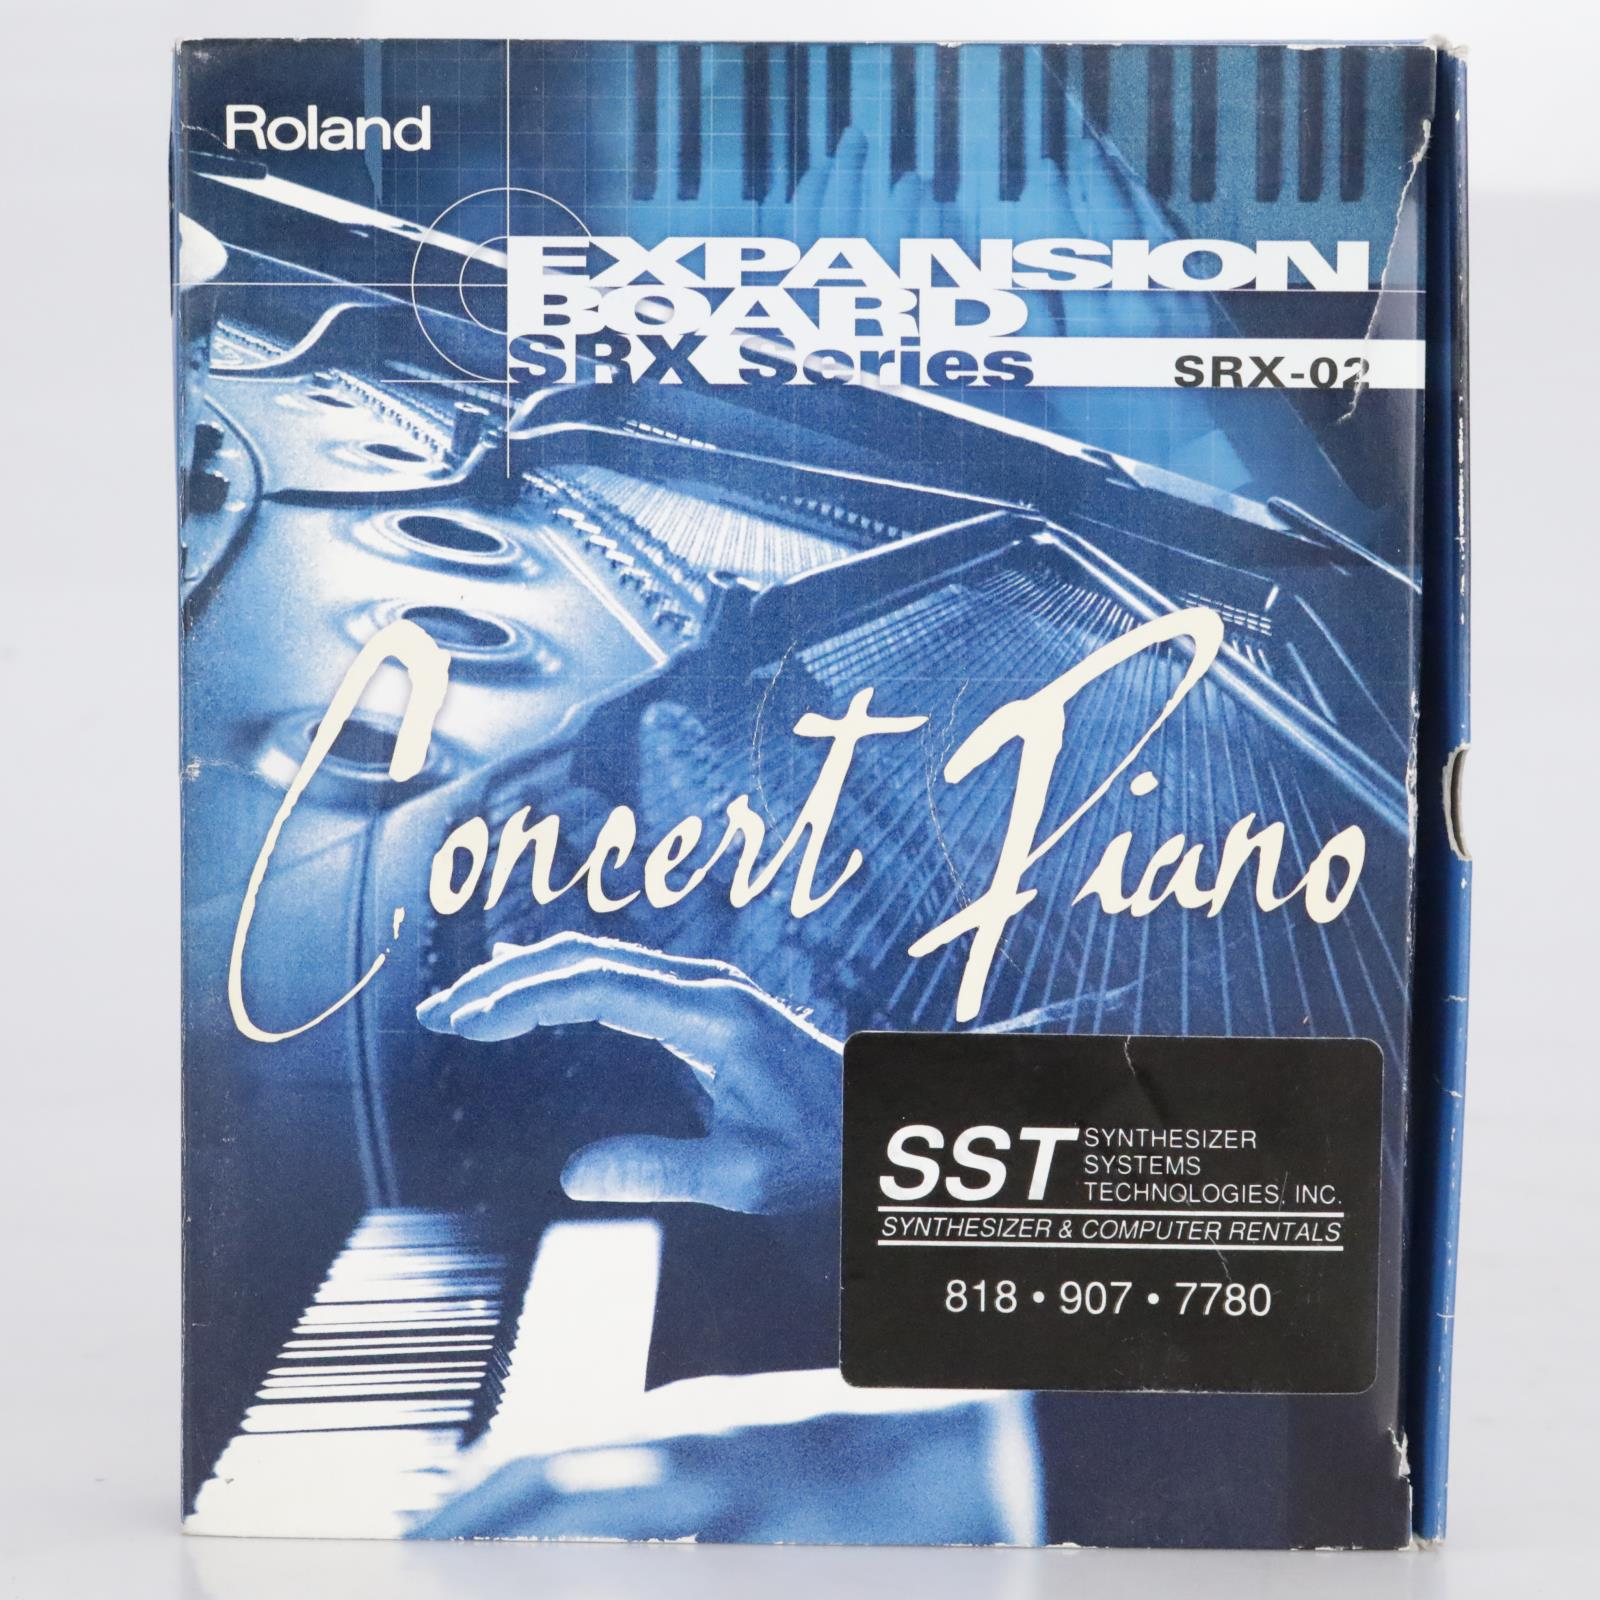 Roland SRX-02 Concert Piano Expansion Board #41648